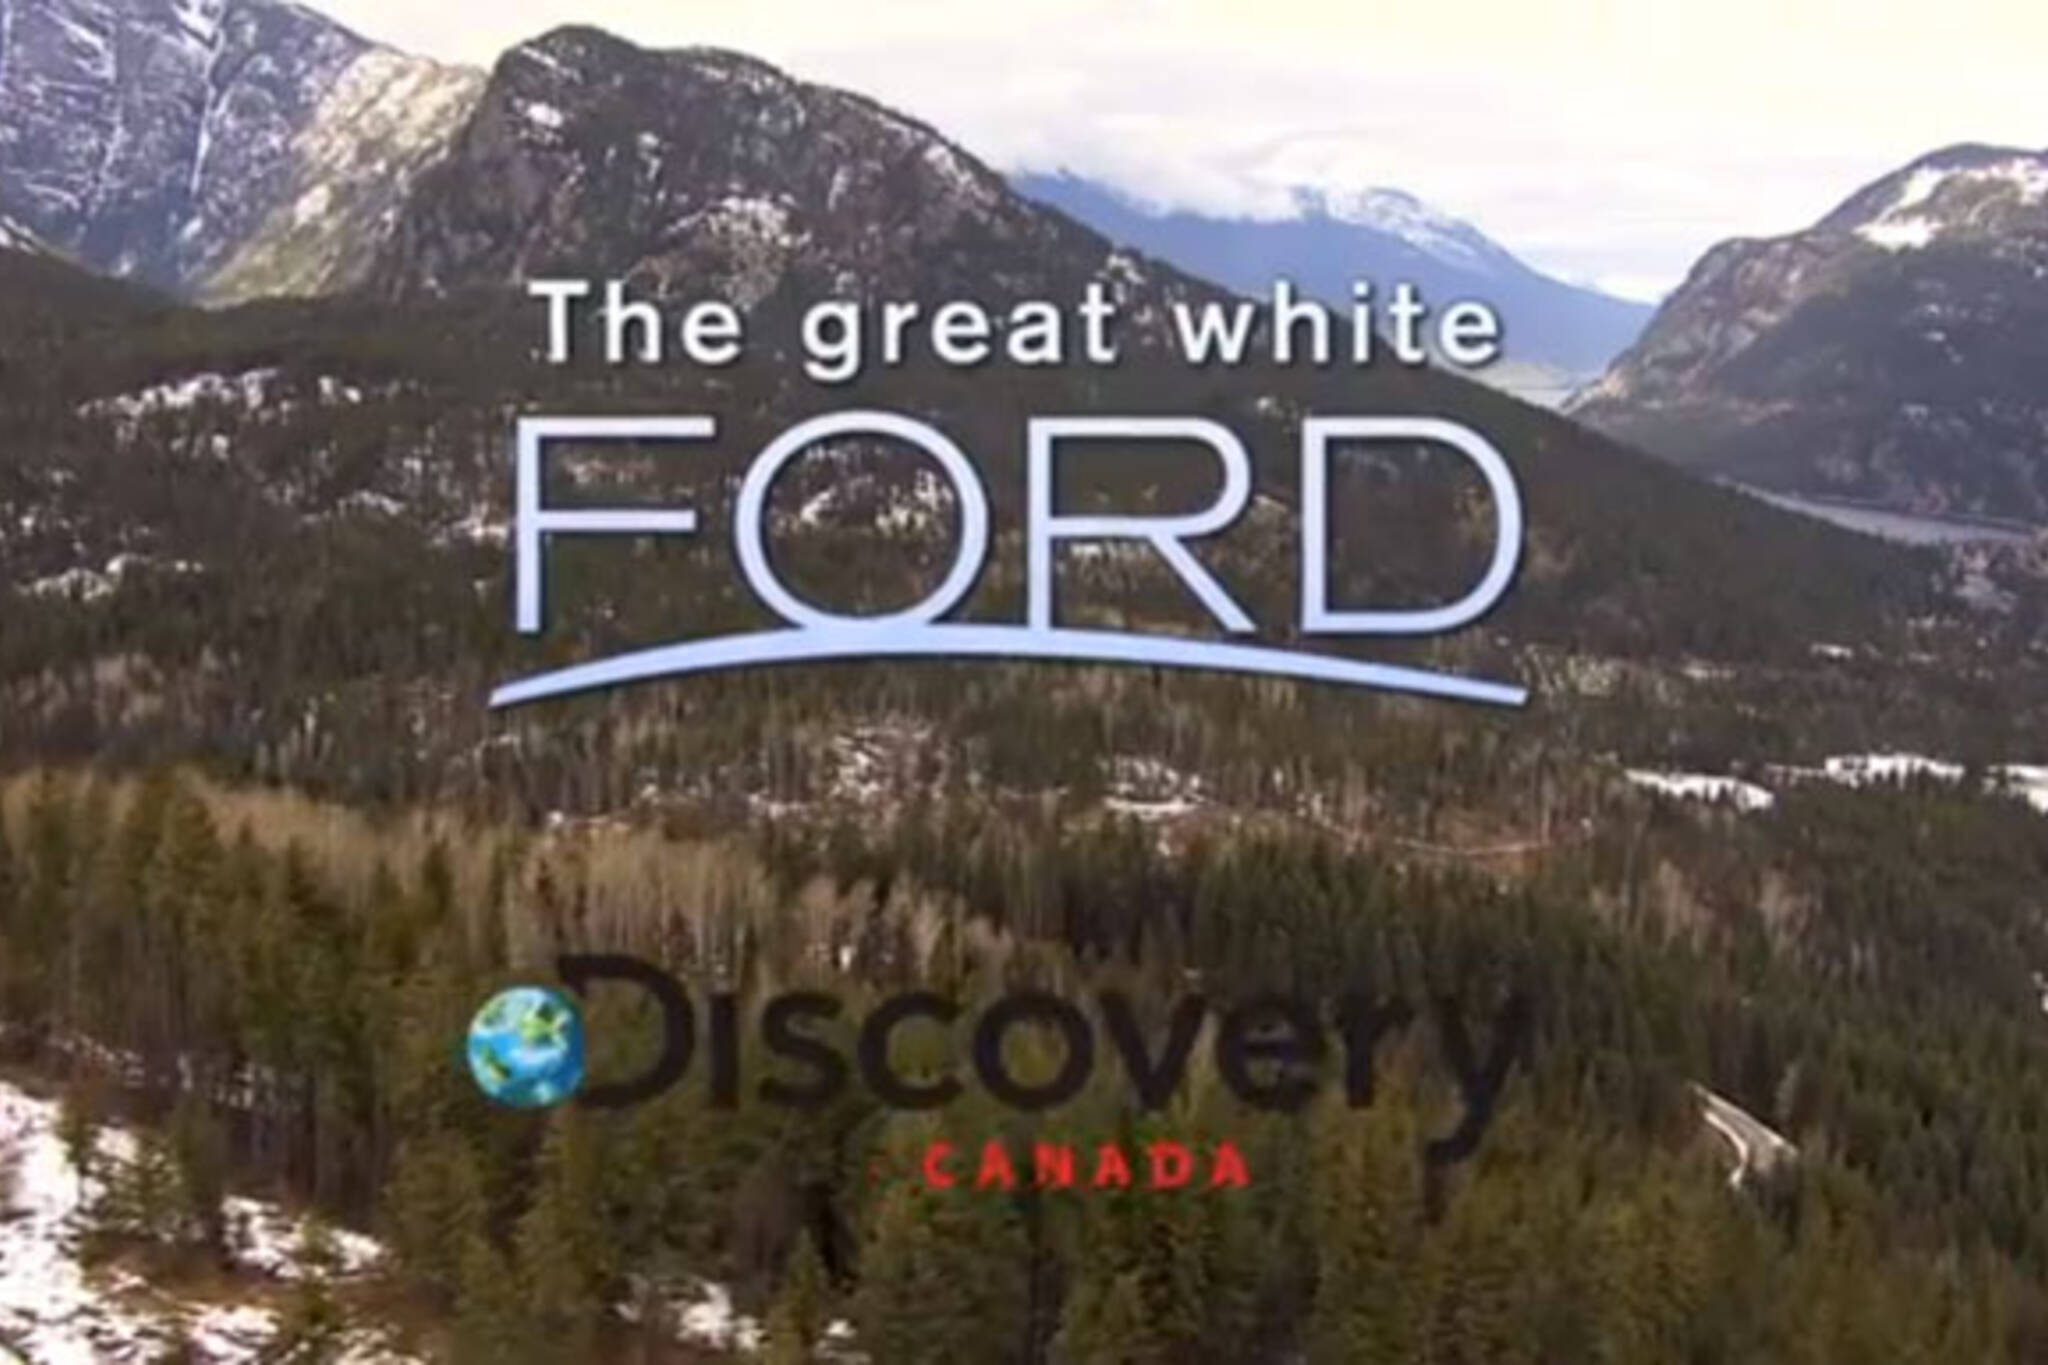 toronto ford documentary